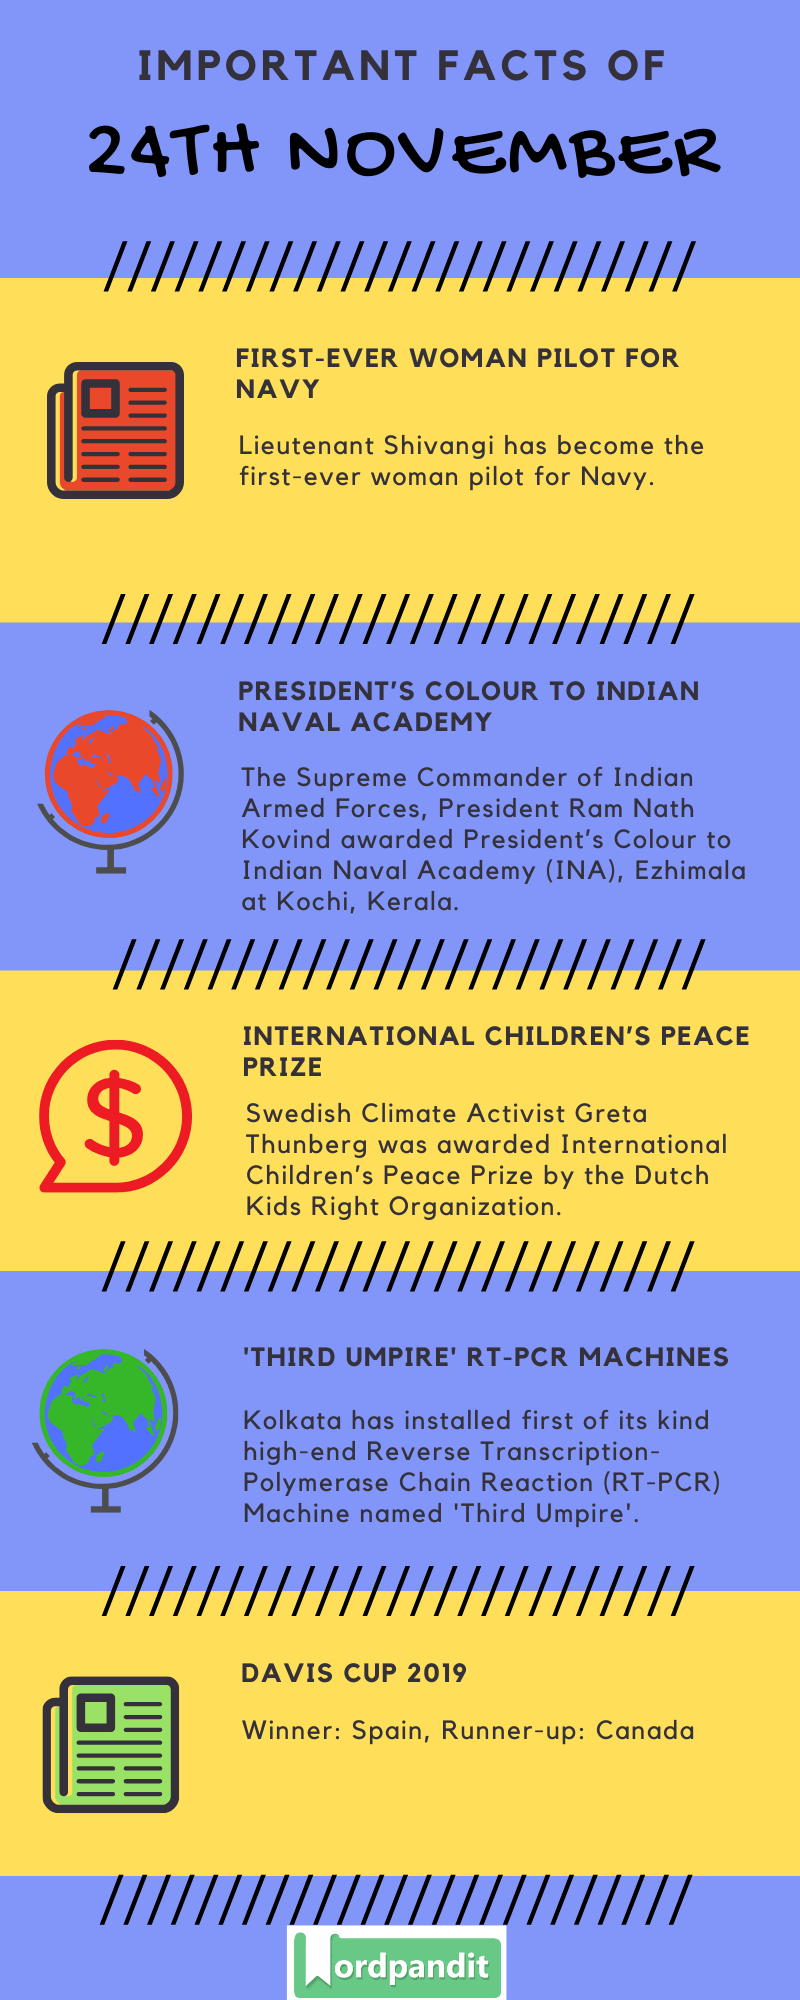 Daily Current Affairs 24 November 2019 Current Affairs Quiz 24 November 2019 Current Affairs Infographic